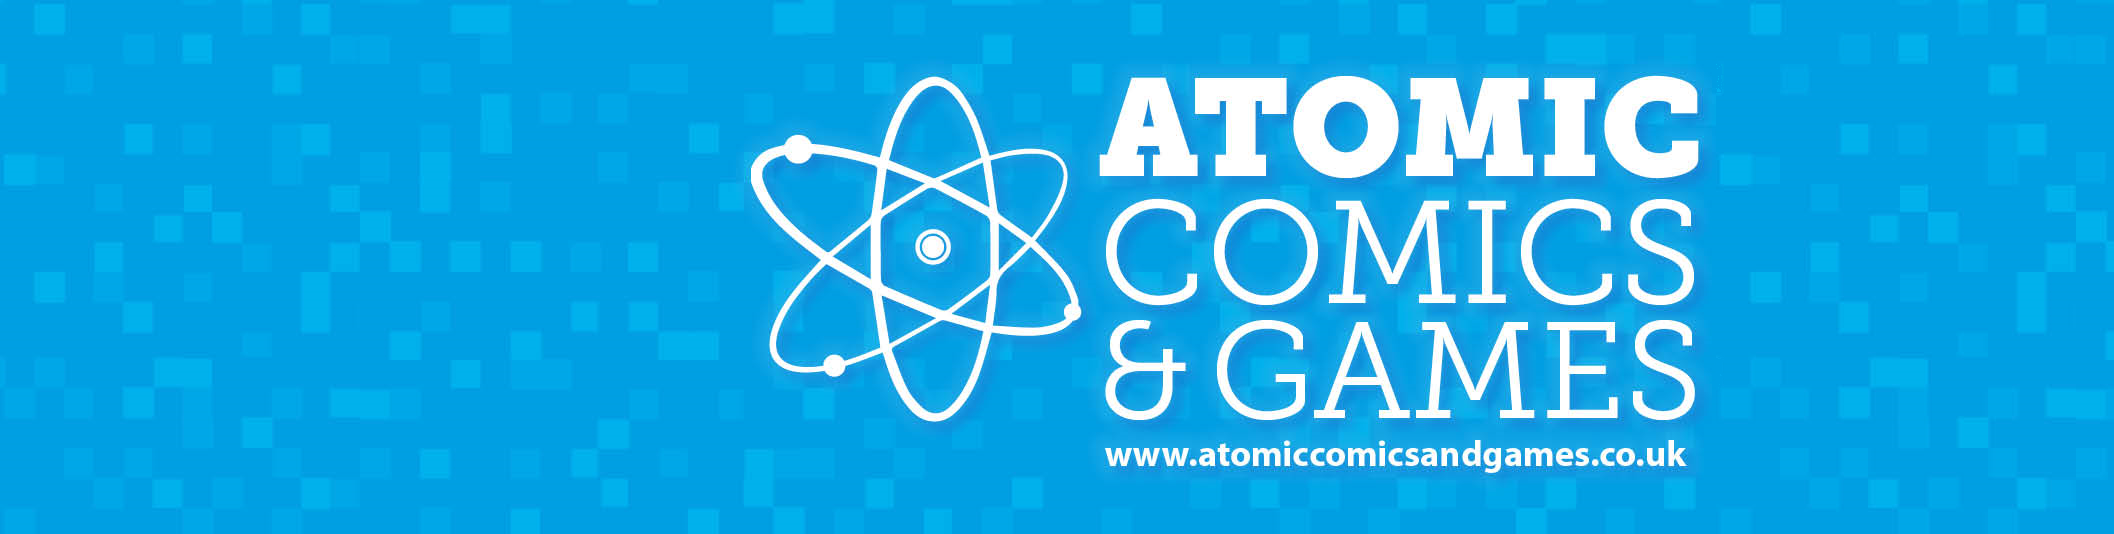 Atomic Comics & Games